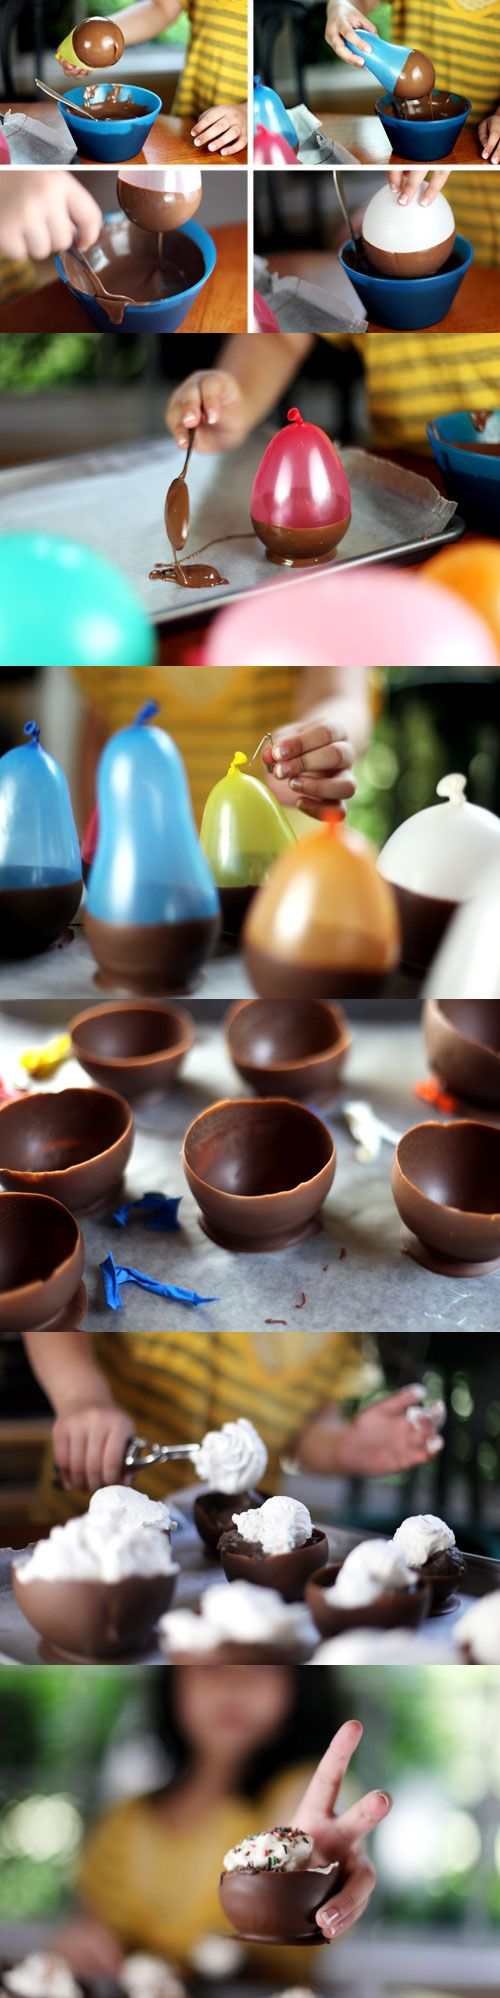 Creative chocolate dessert